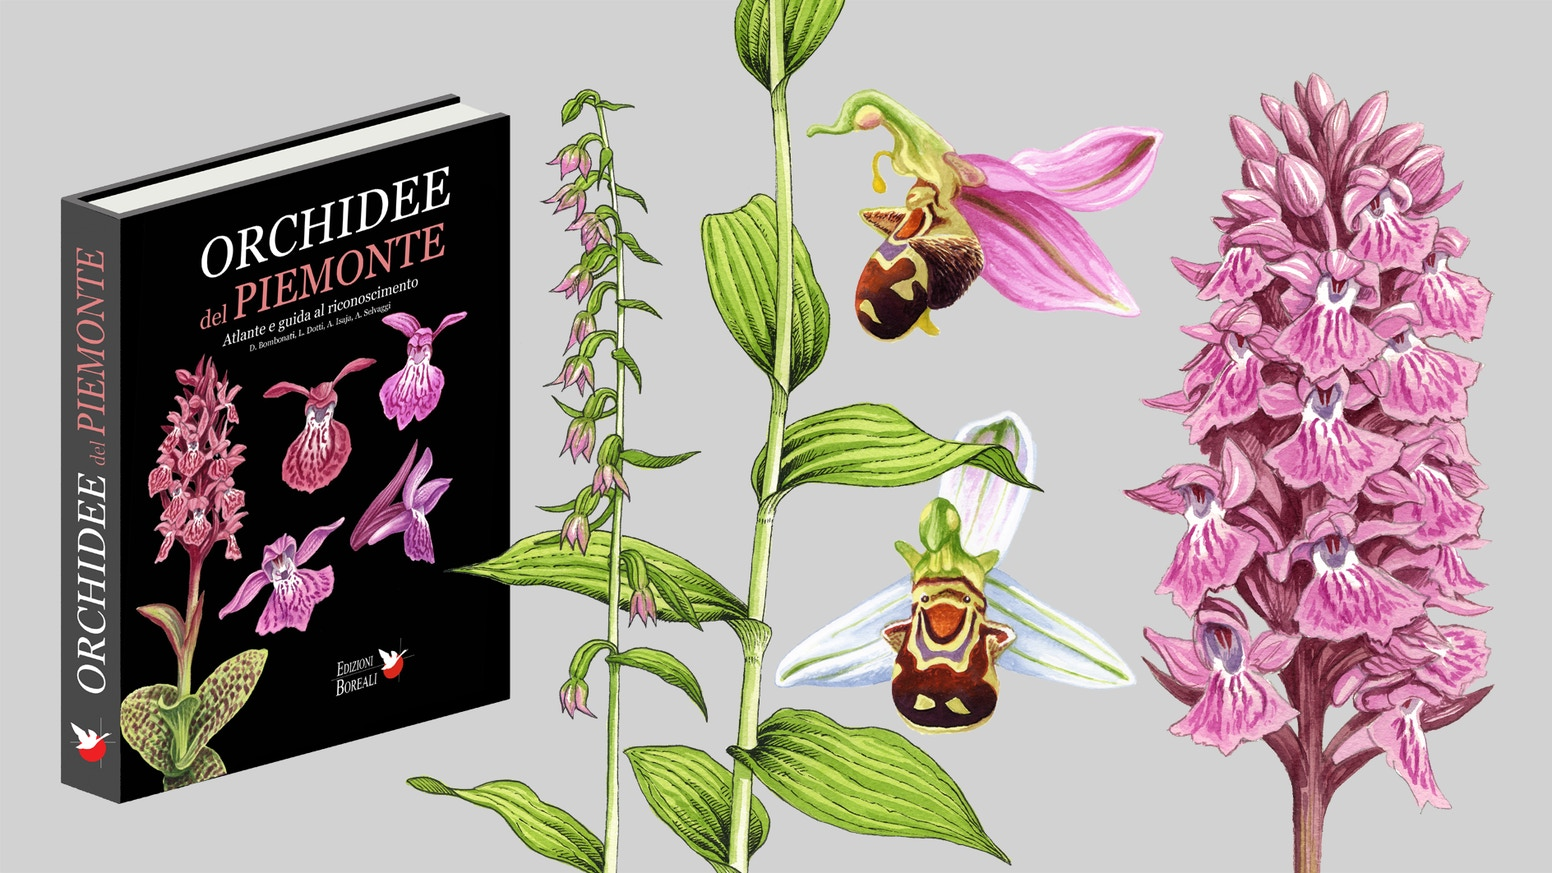 Orchidee del piemonte atlante e guida by boreali for Atlante compass